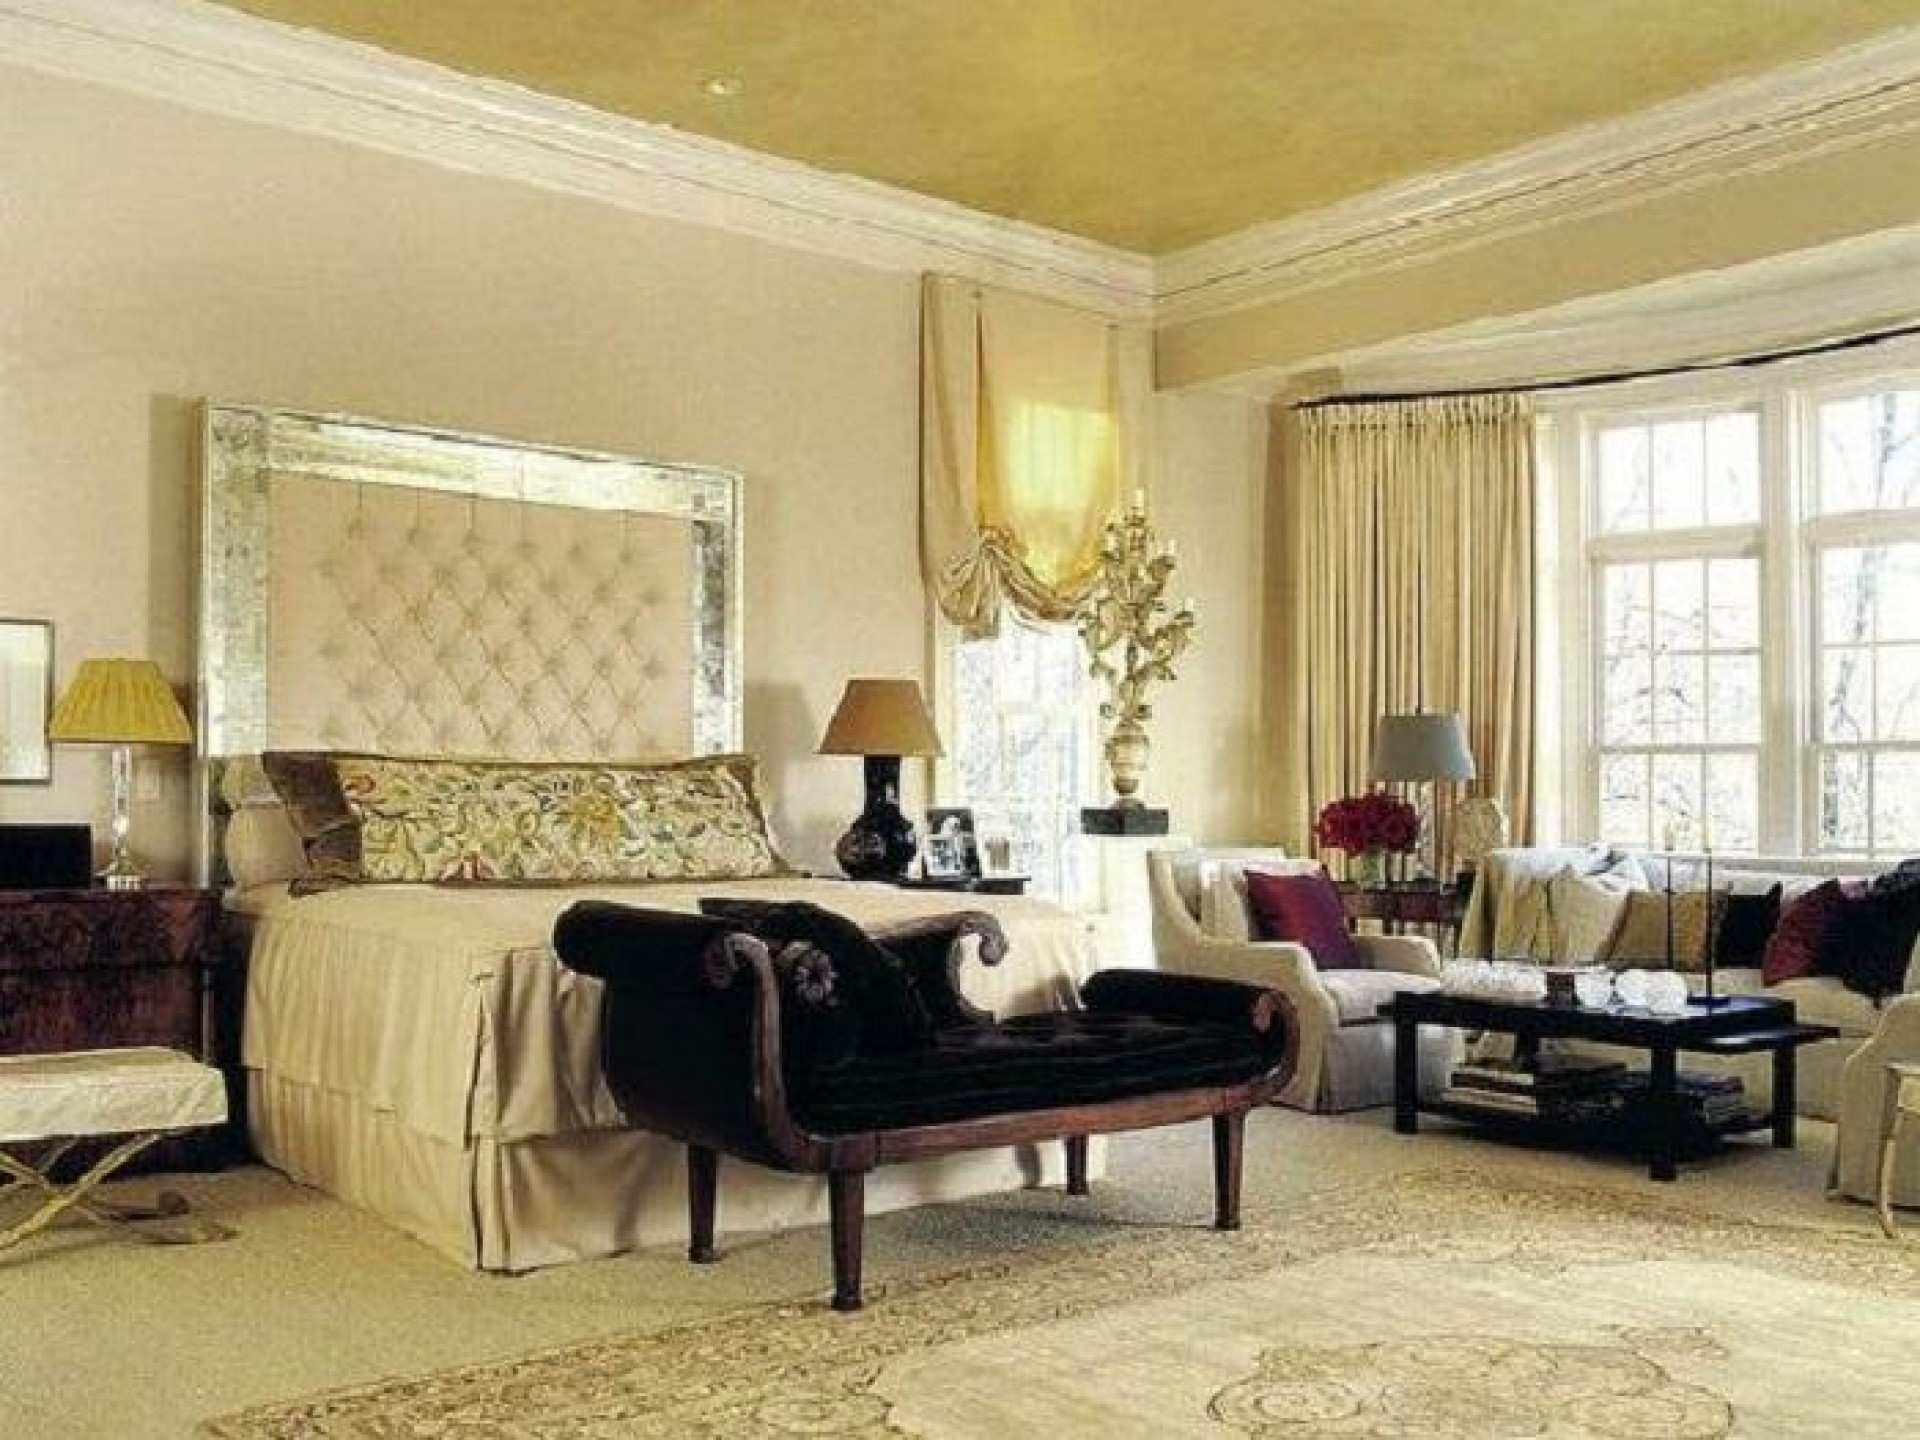 How to Arrange Pictures On Wall Different Sizes Elegant Arranging A Bedroom Feng Shui Glorious Decorating A Bedroom Feng